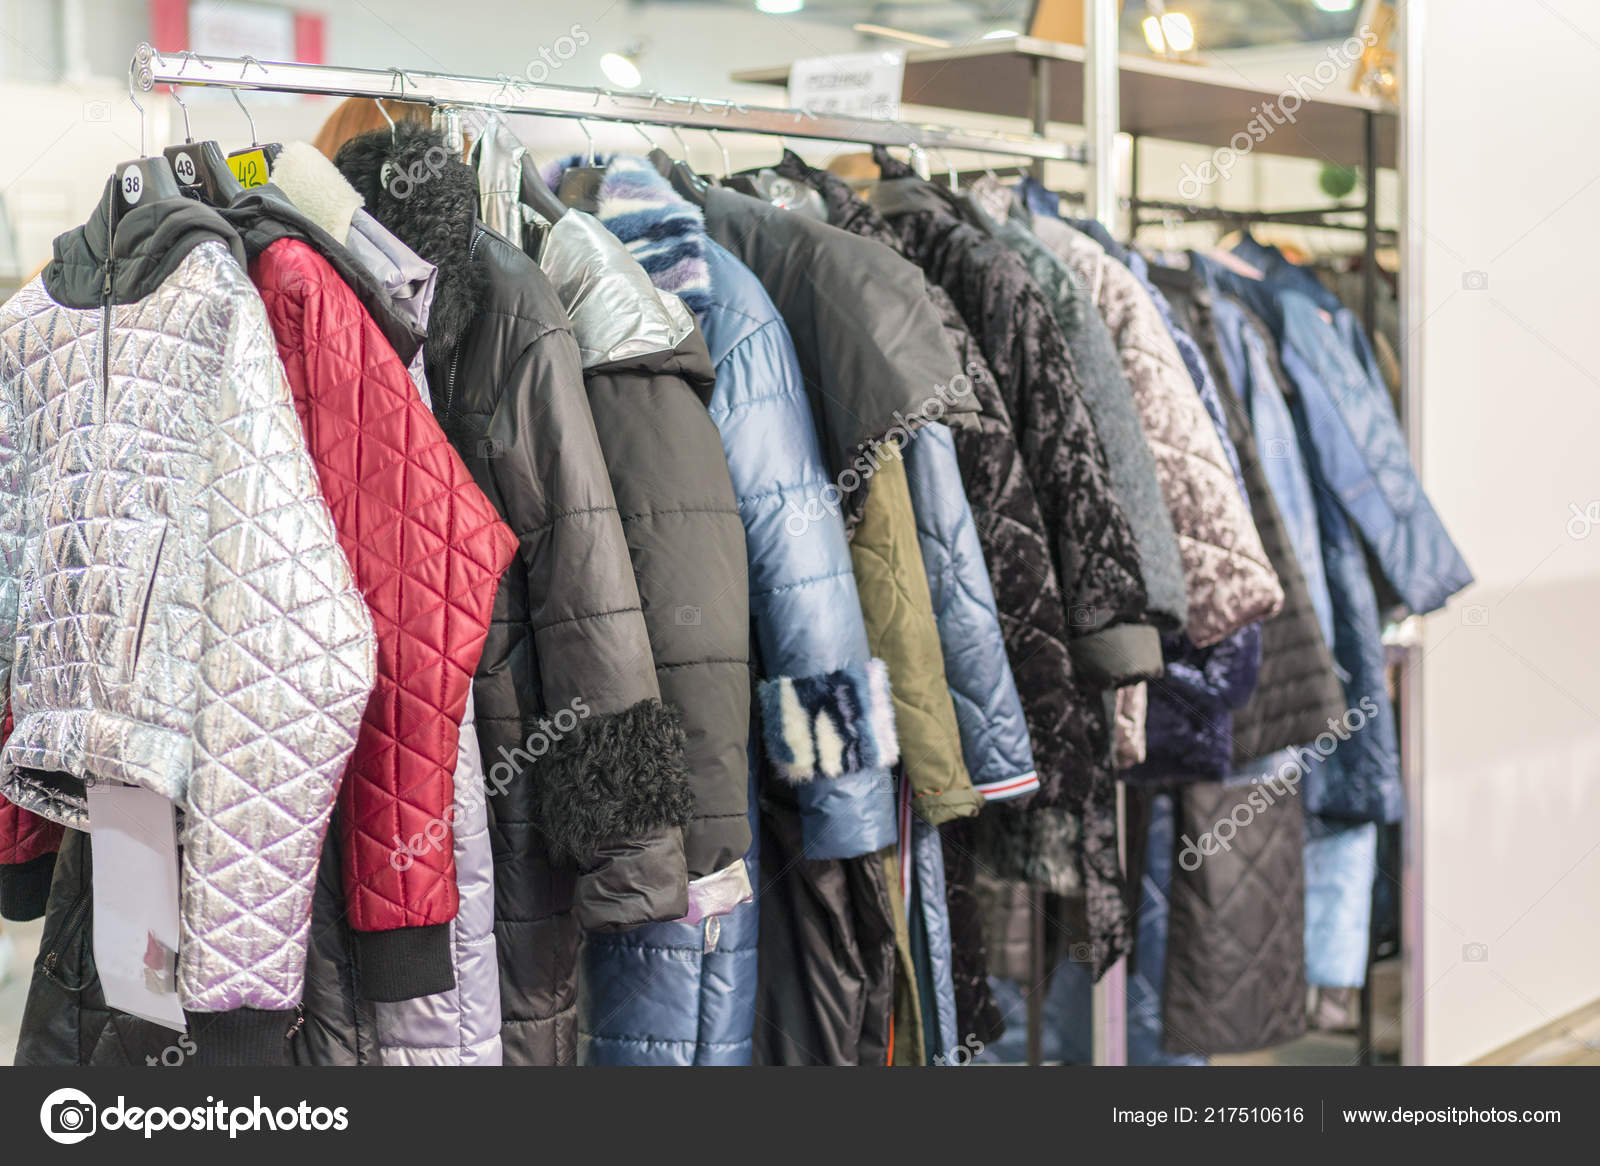 f665cfc7c Pictures : winter jackets | Winter Jacket Winter Sale Clothes Rack ...